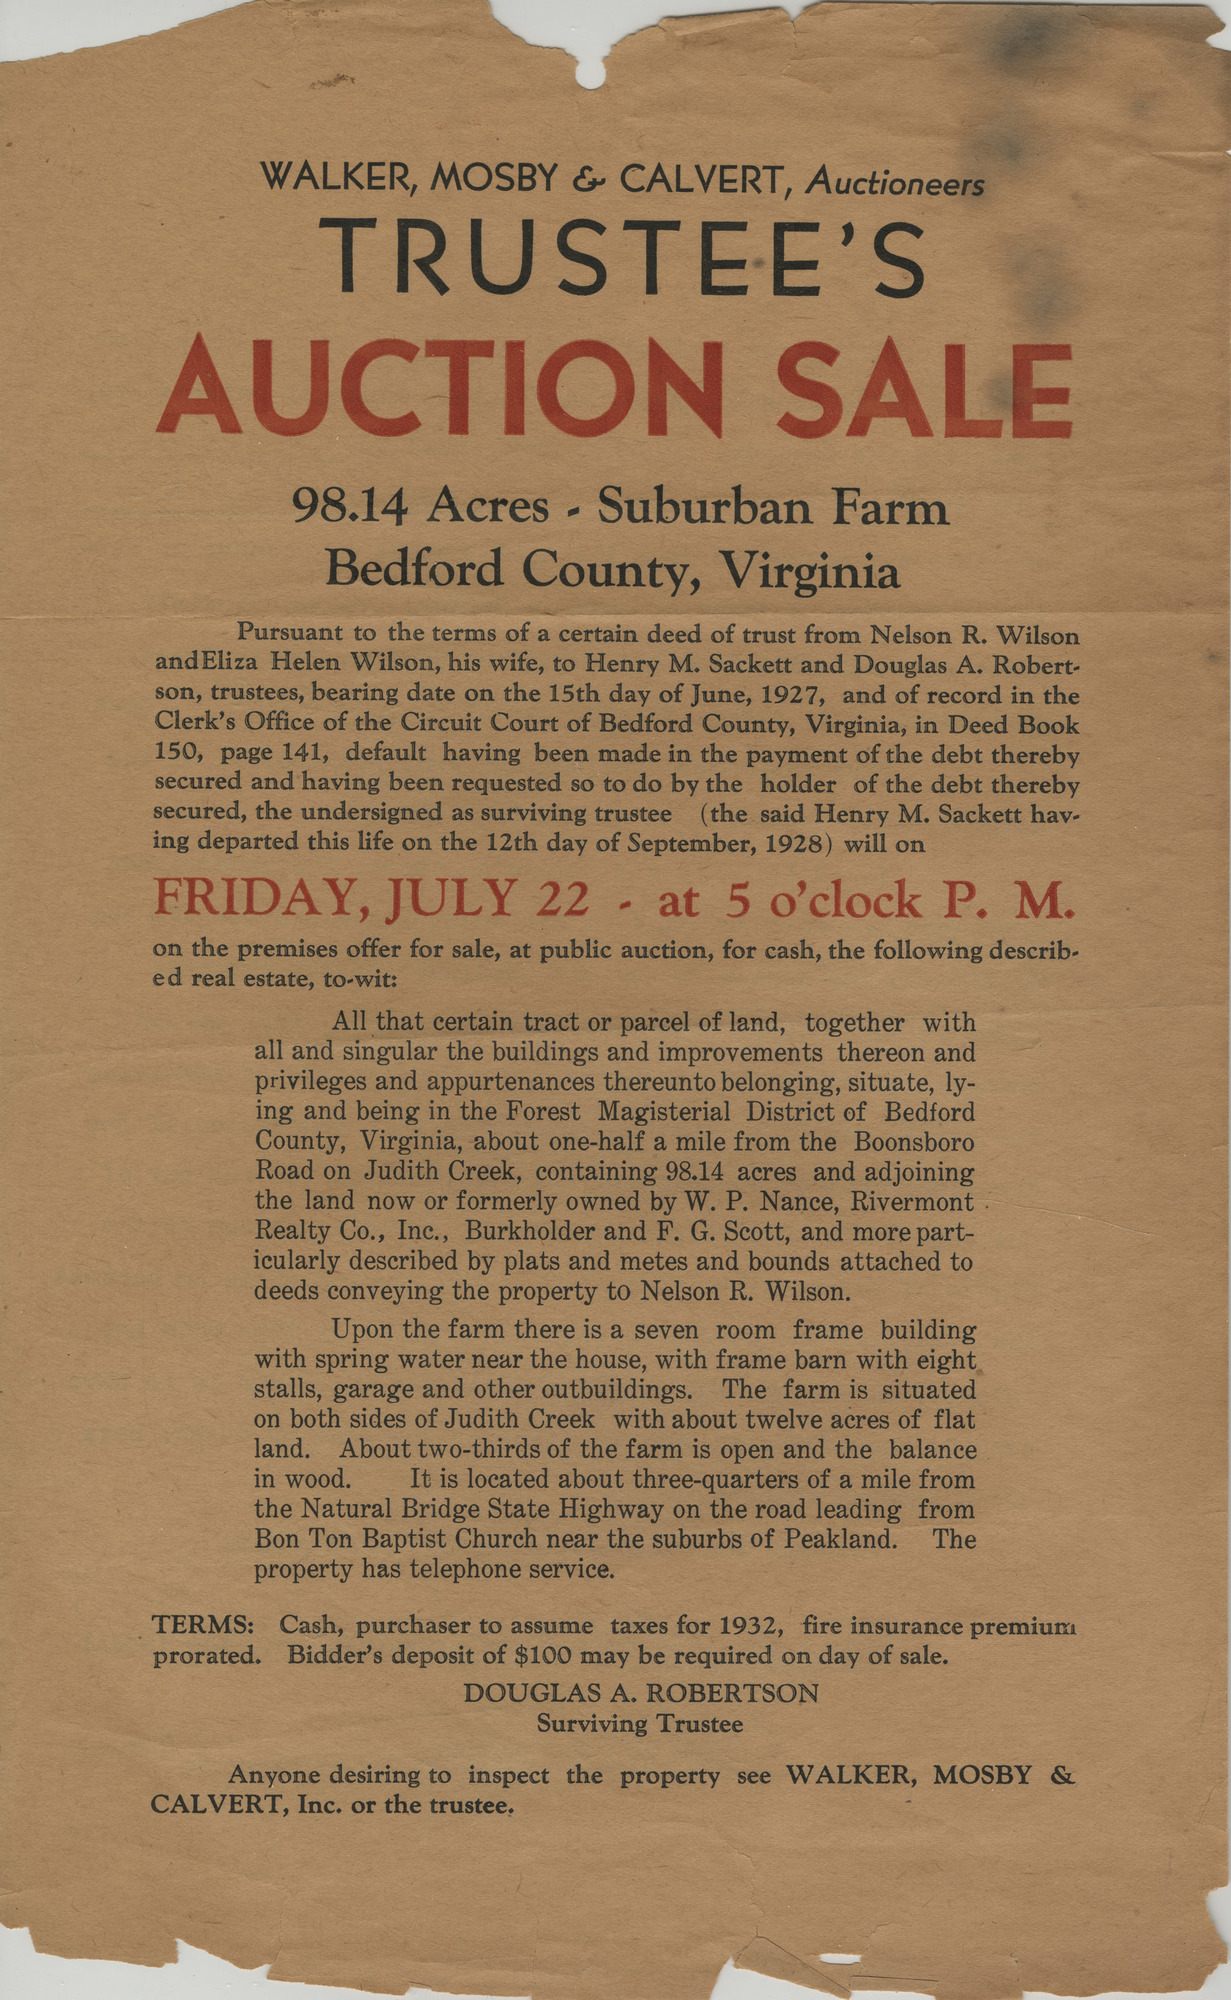 Ms2009-016_WilsonNelson_AuctionBroadside_a.jpg